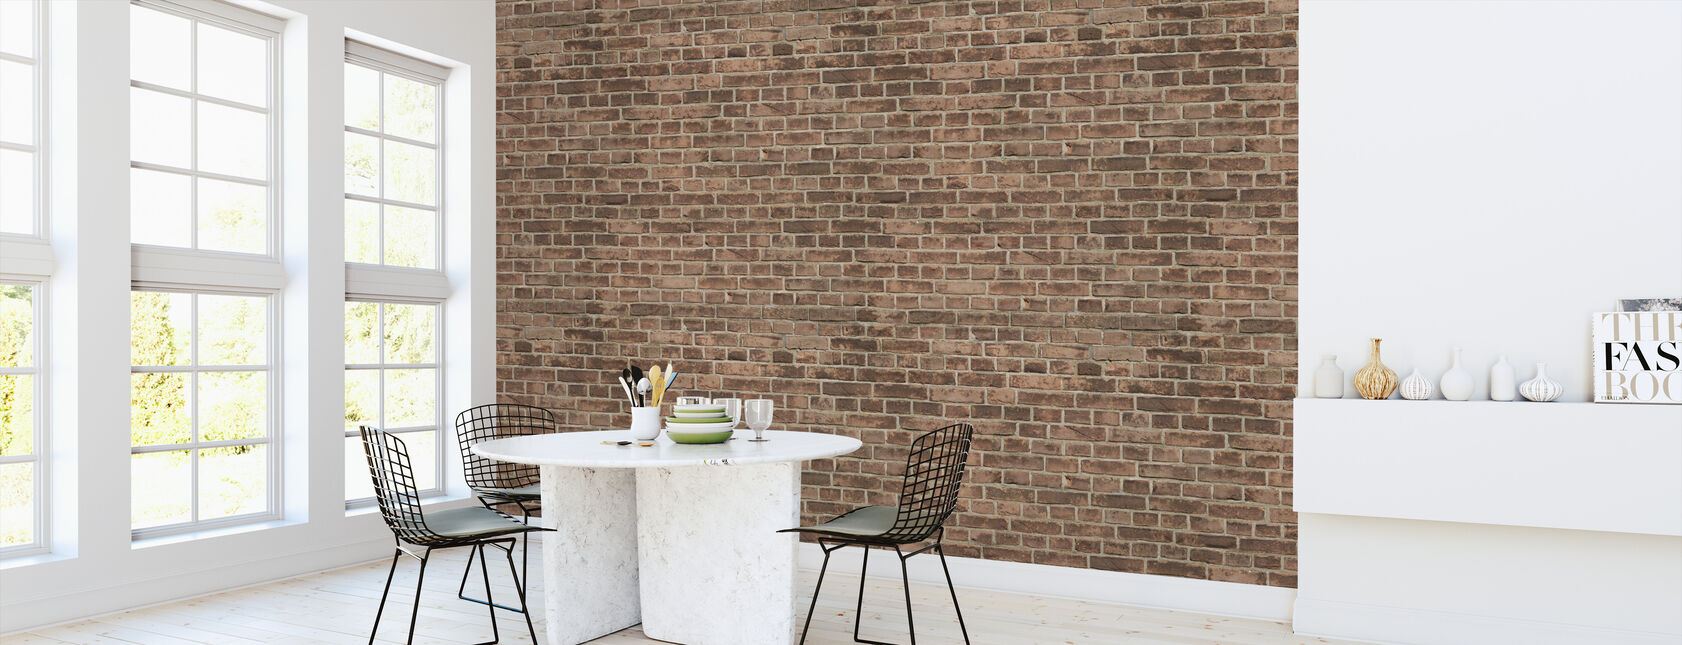 Amsterdam Brick Wall - Wallpaper - Kitchen